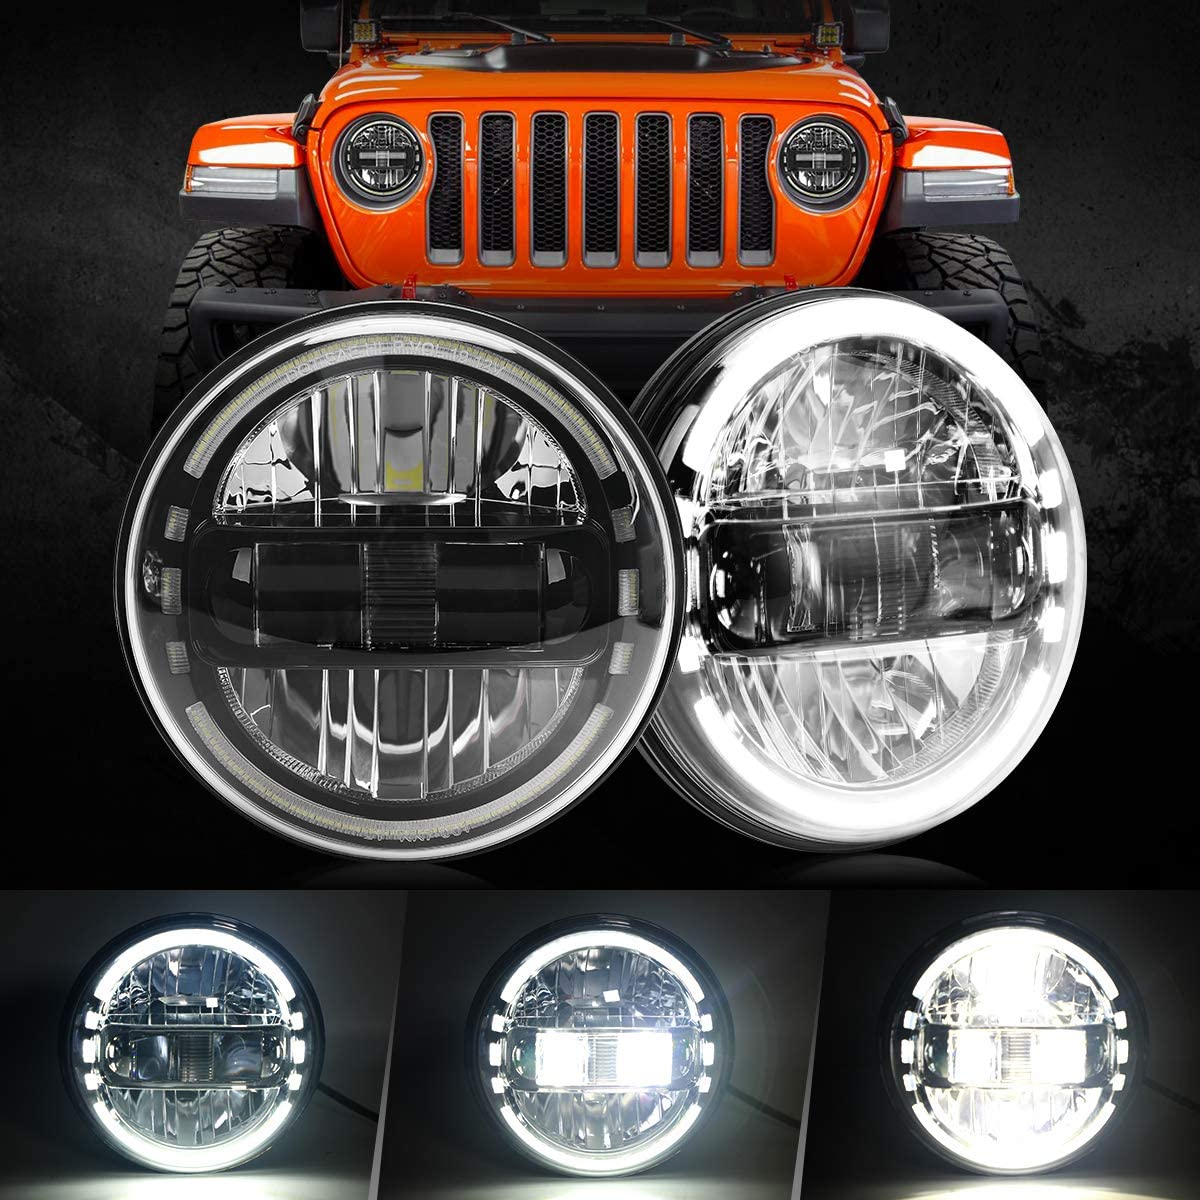 Amazon Com 2020 Newest 7 Inch Round Led Headlight Headlamps With Daytime Running Light Drl High Low Beam Compatible With Jeep Wrangler Jk Tj Lj 97 2018 Hummer H1 H2 Headlamps Black Automotive